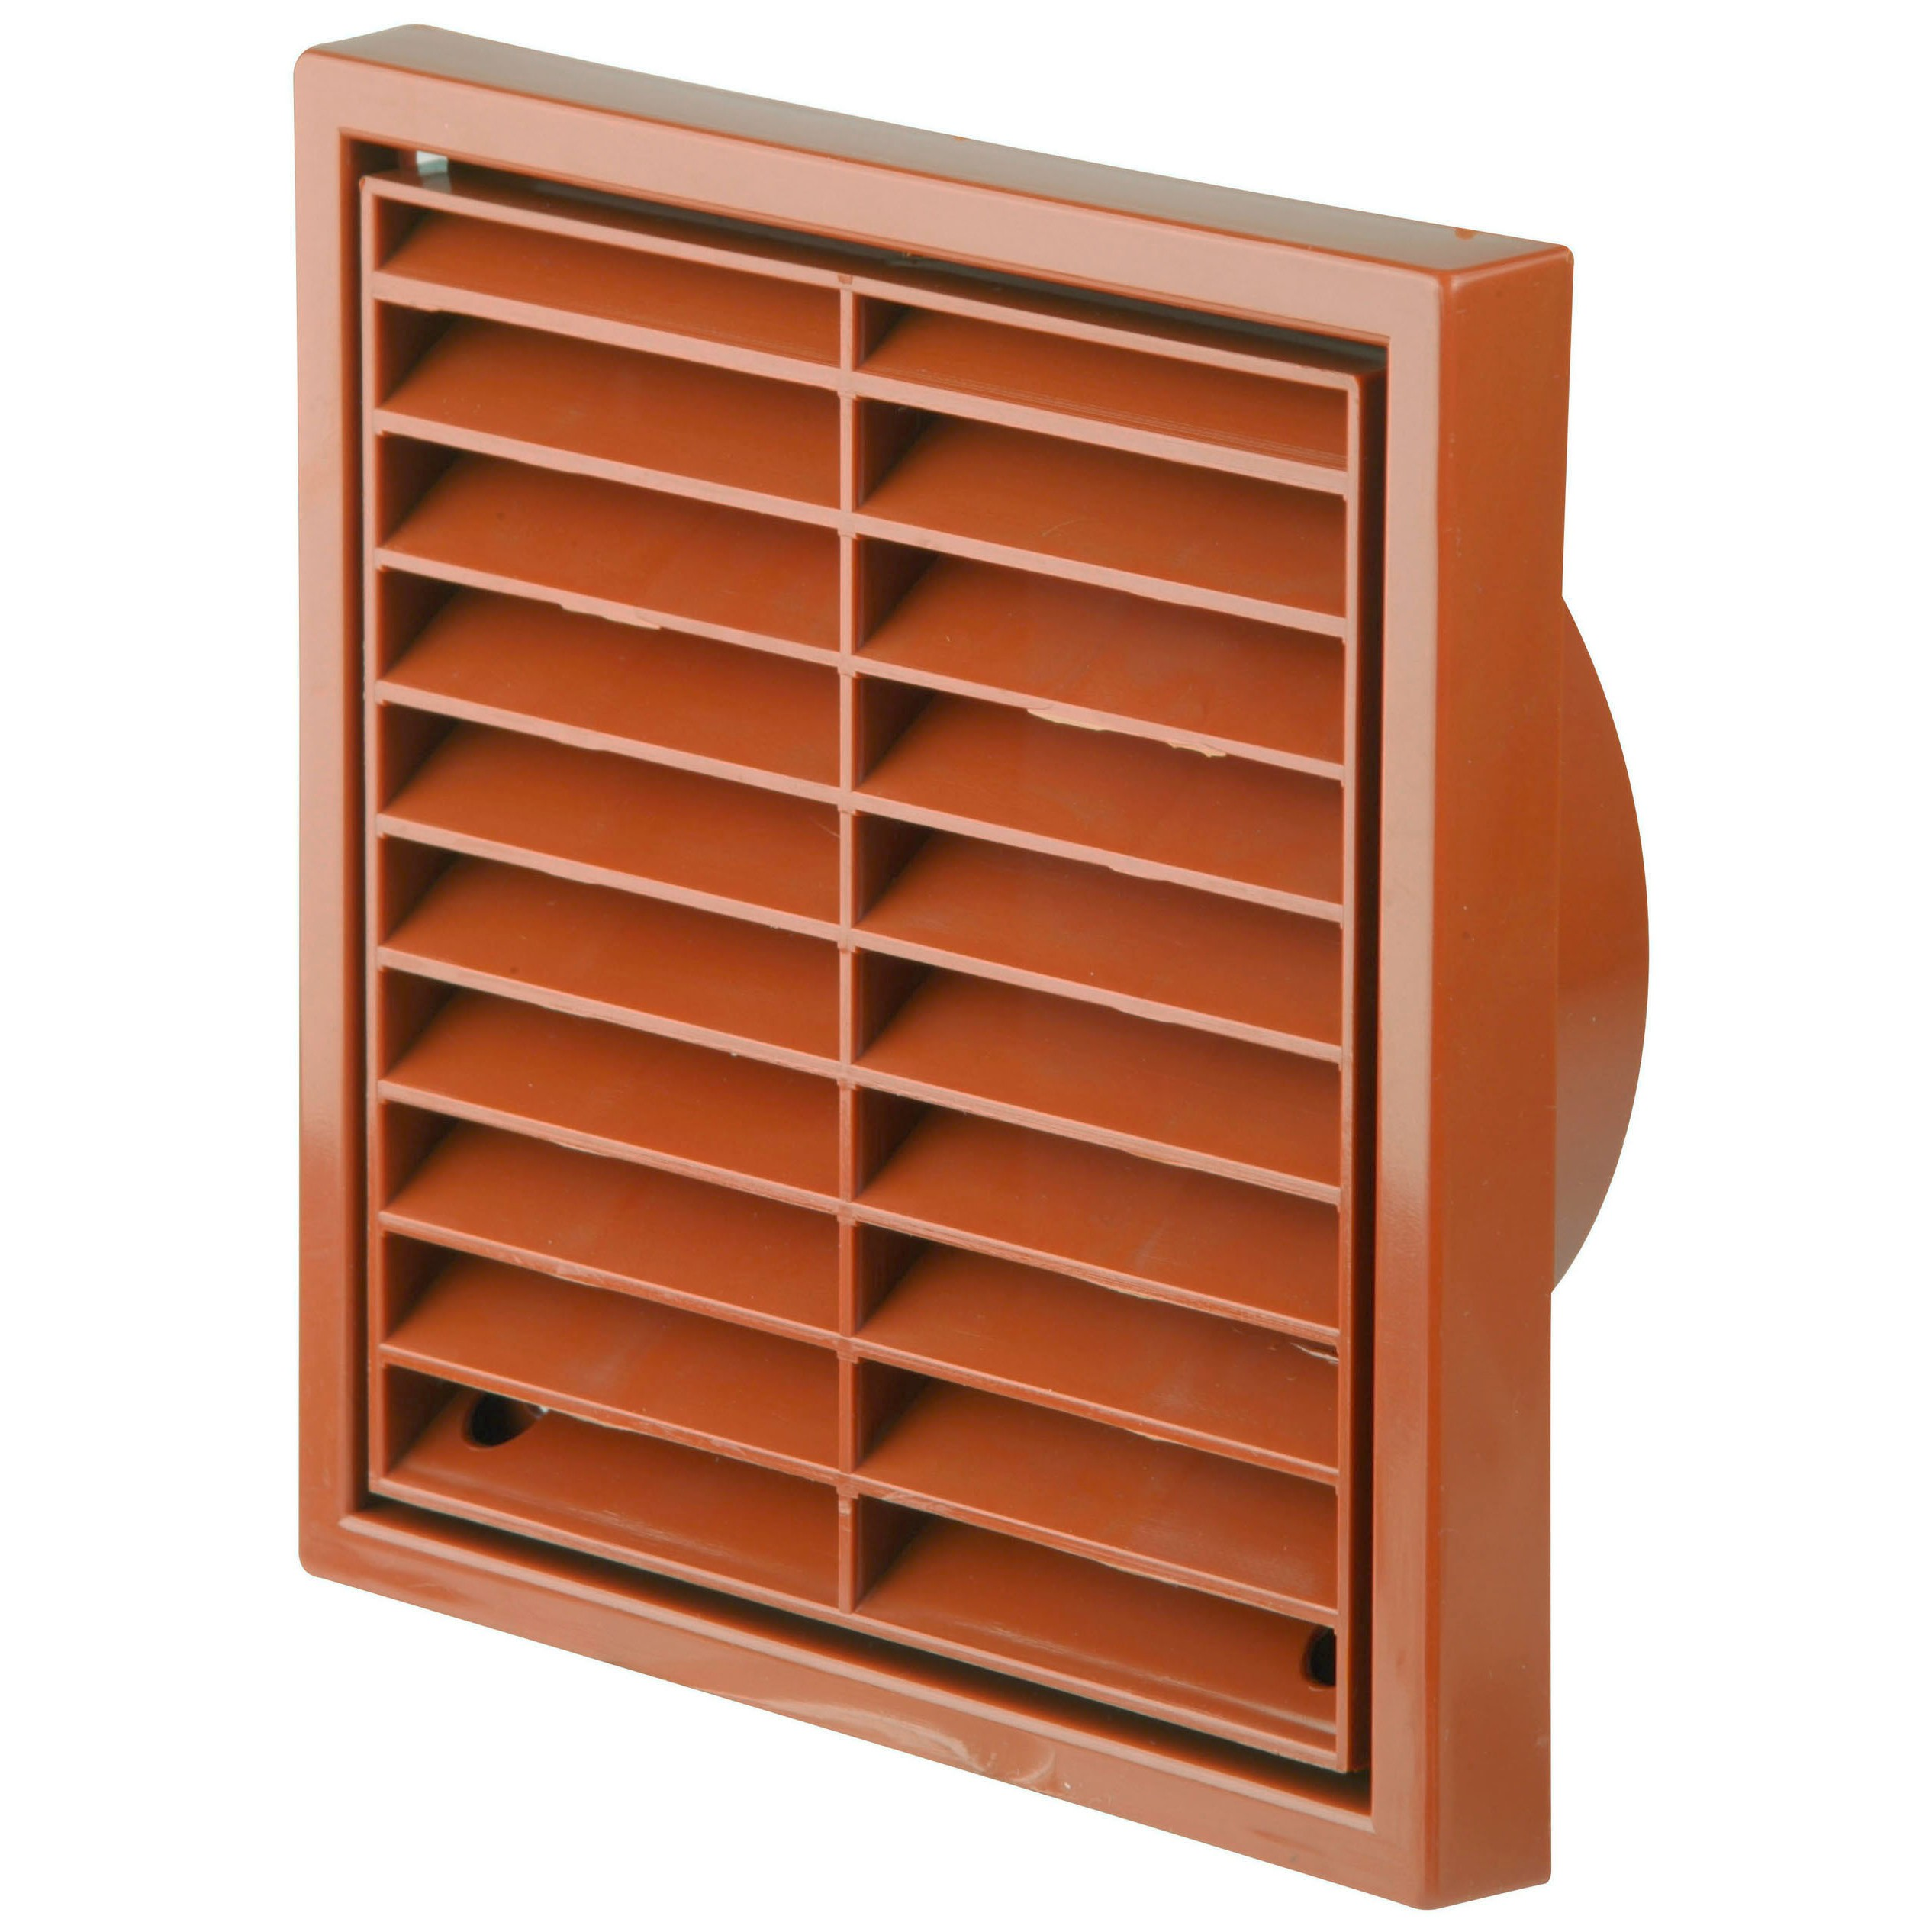 Manrose Round Ducting Pipe Fixed Grille Vent Outlet - Terracotta, 150mm